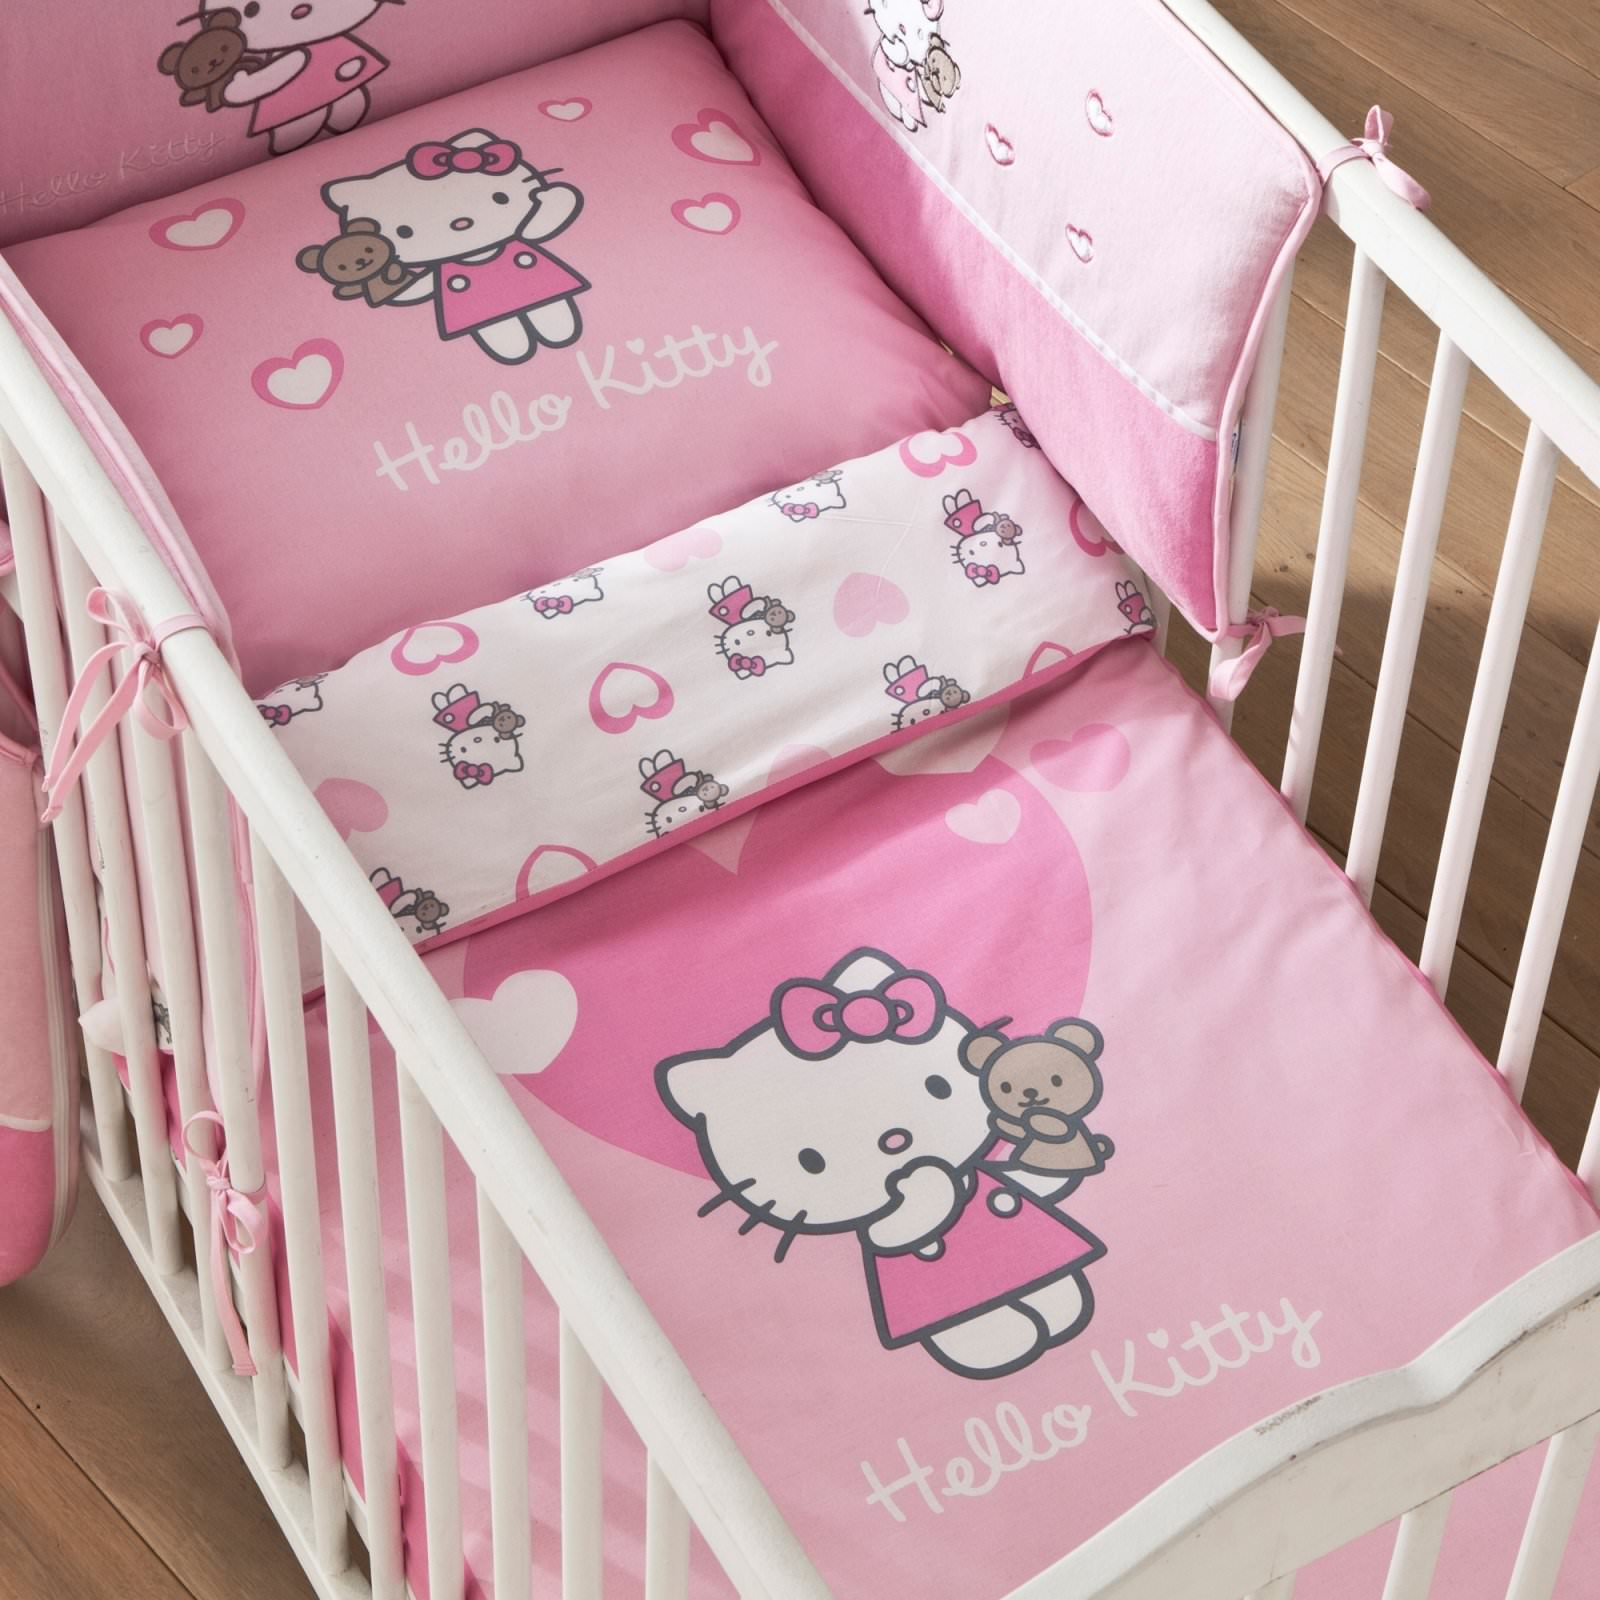 housse de couette hello kitty 100 x 135 cm petit lit parure de lit alice d cokids. Black Bedroom Furniture Sets. Home Design Ideas